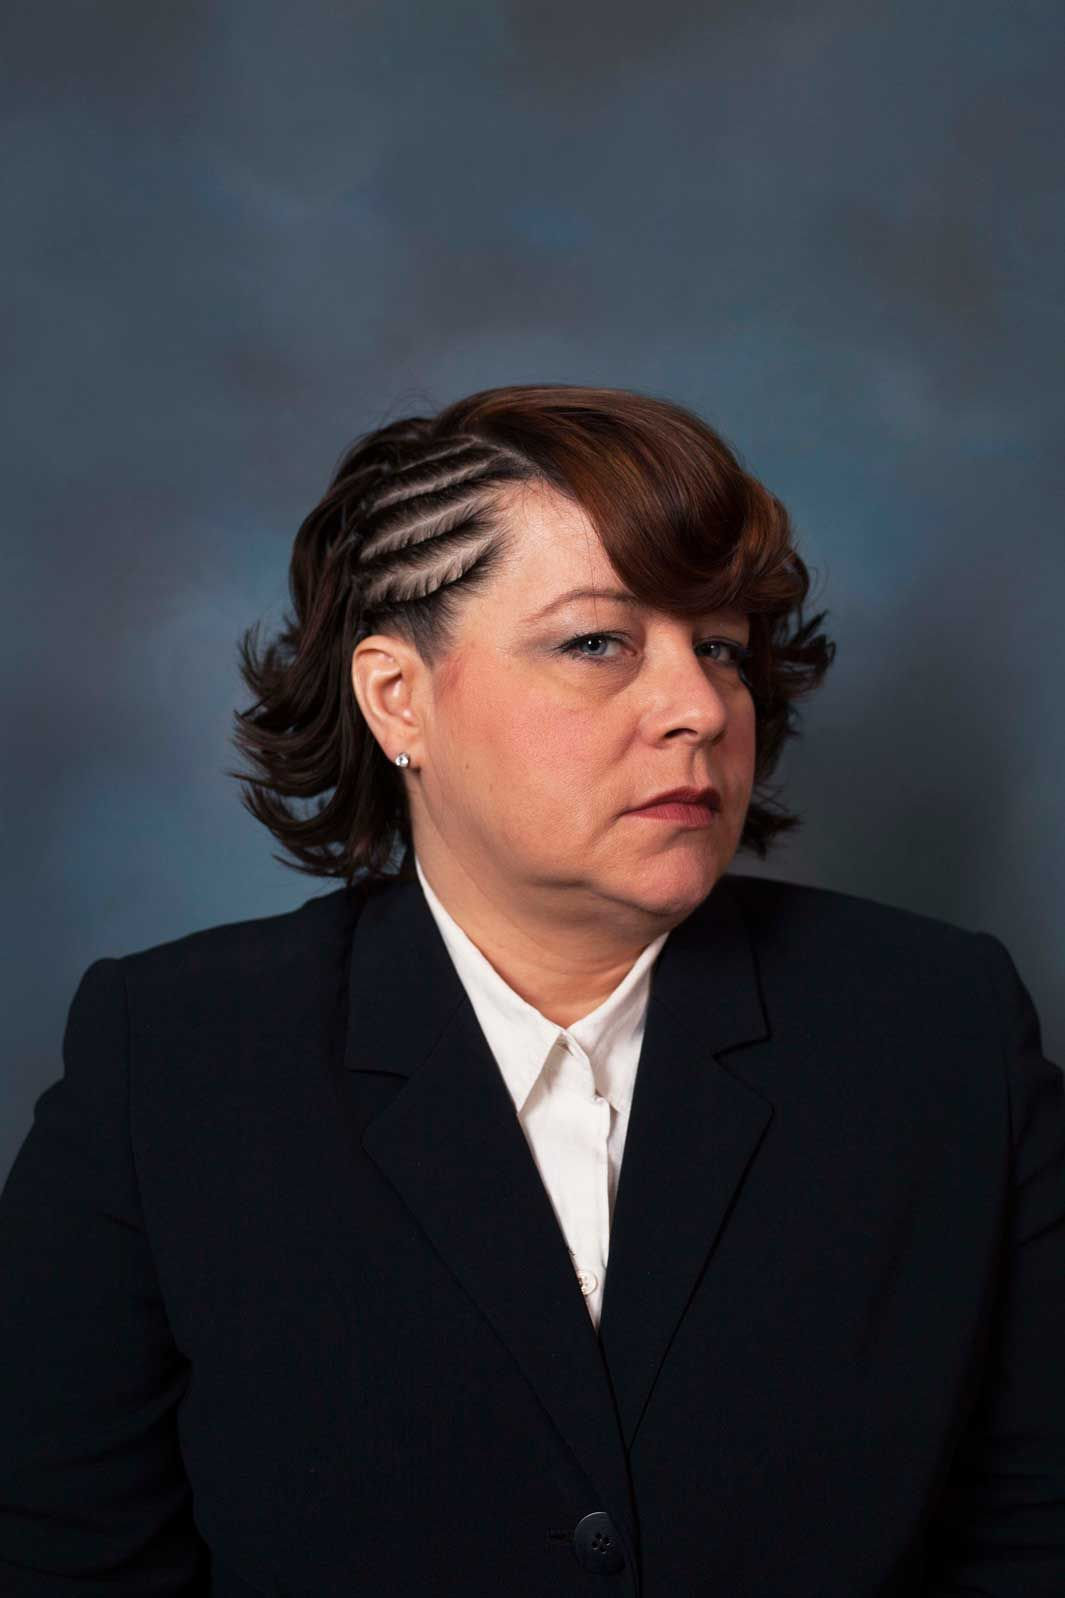 corporate portraits of white women with black hairstyles | white